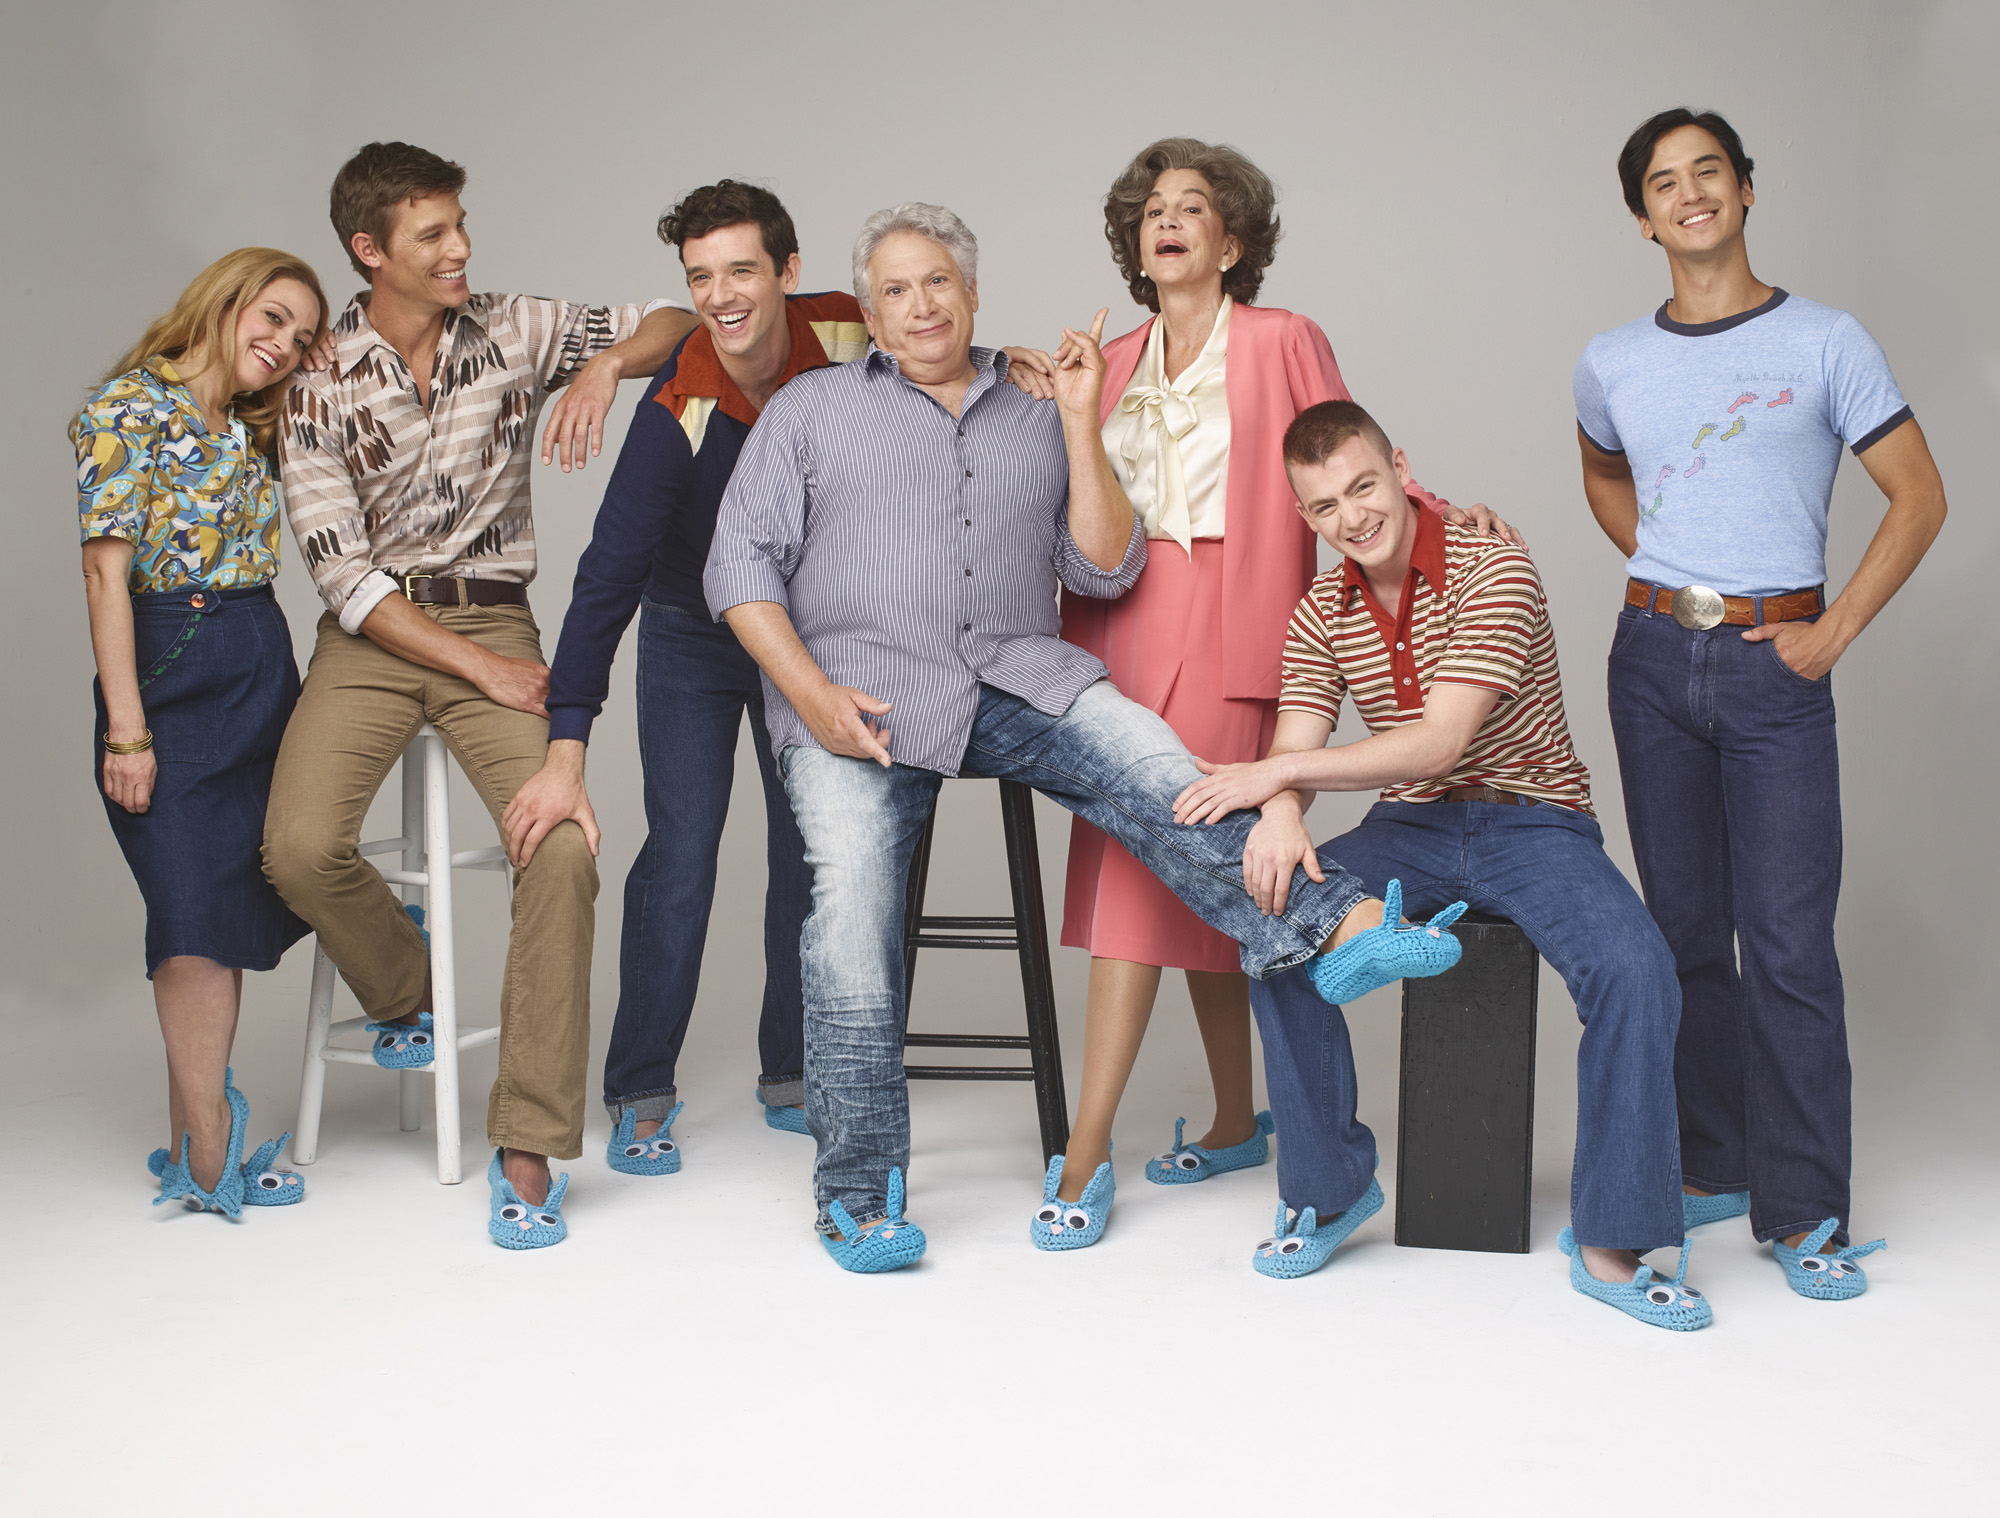 Roxanna Hope Radja, Ward Horton, Michael Urie, Harvey Fierstein, Mercedes Ruehl, Jack DiFalco, and Michael Hsu Rosen. Photo Credit: Andrew Eccles.